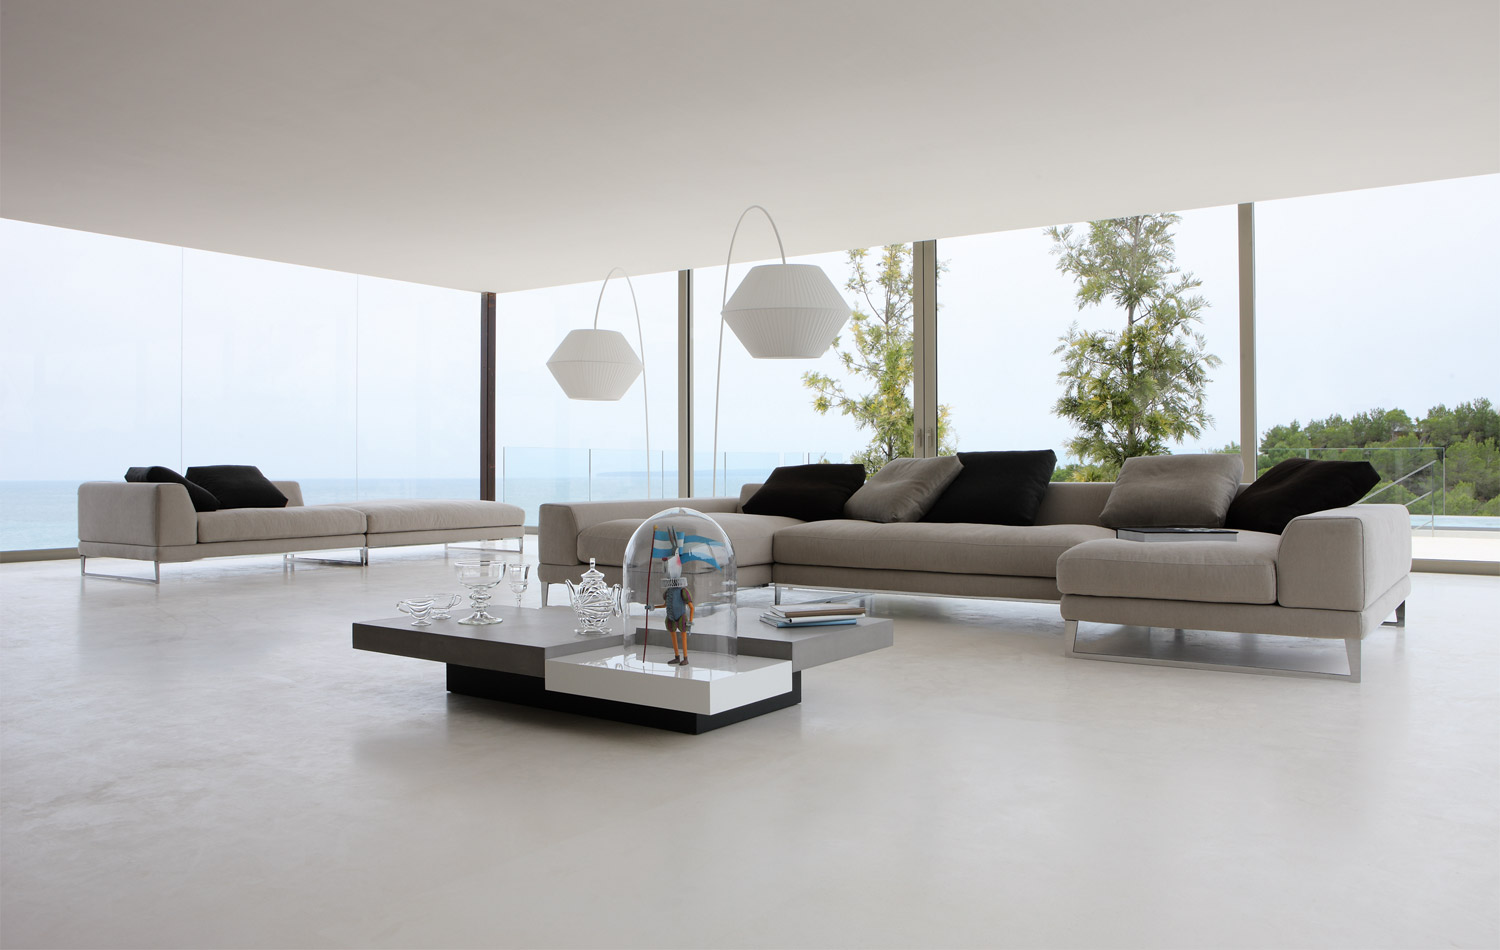 Living room inspiration 120 modern sofas by roche bobois for Design ideen wohnzimmer